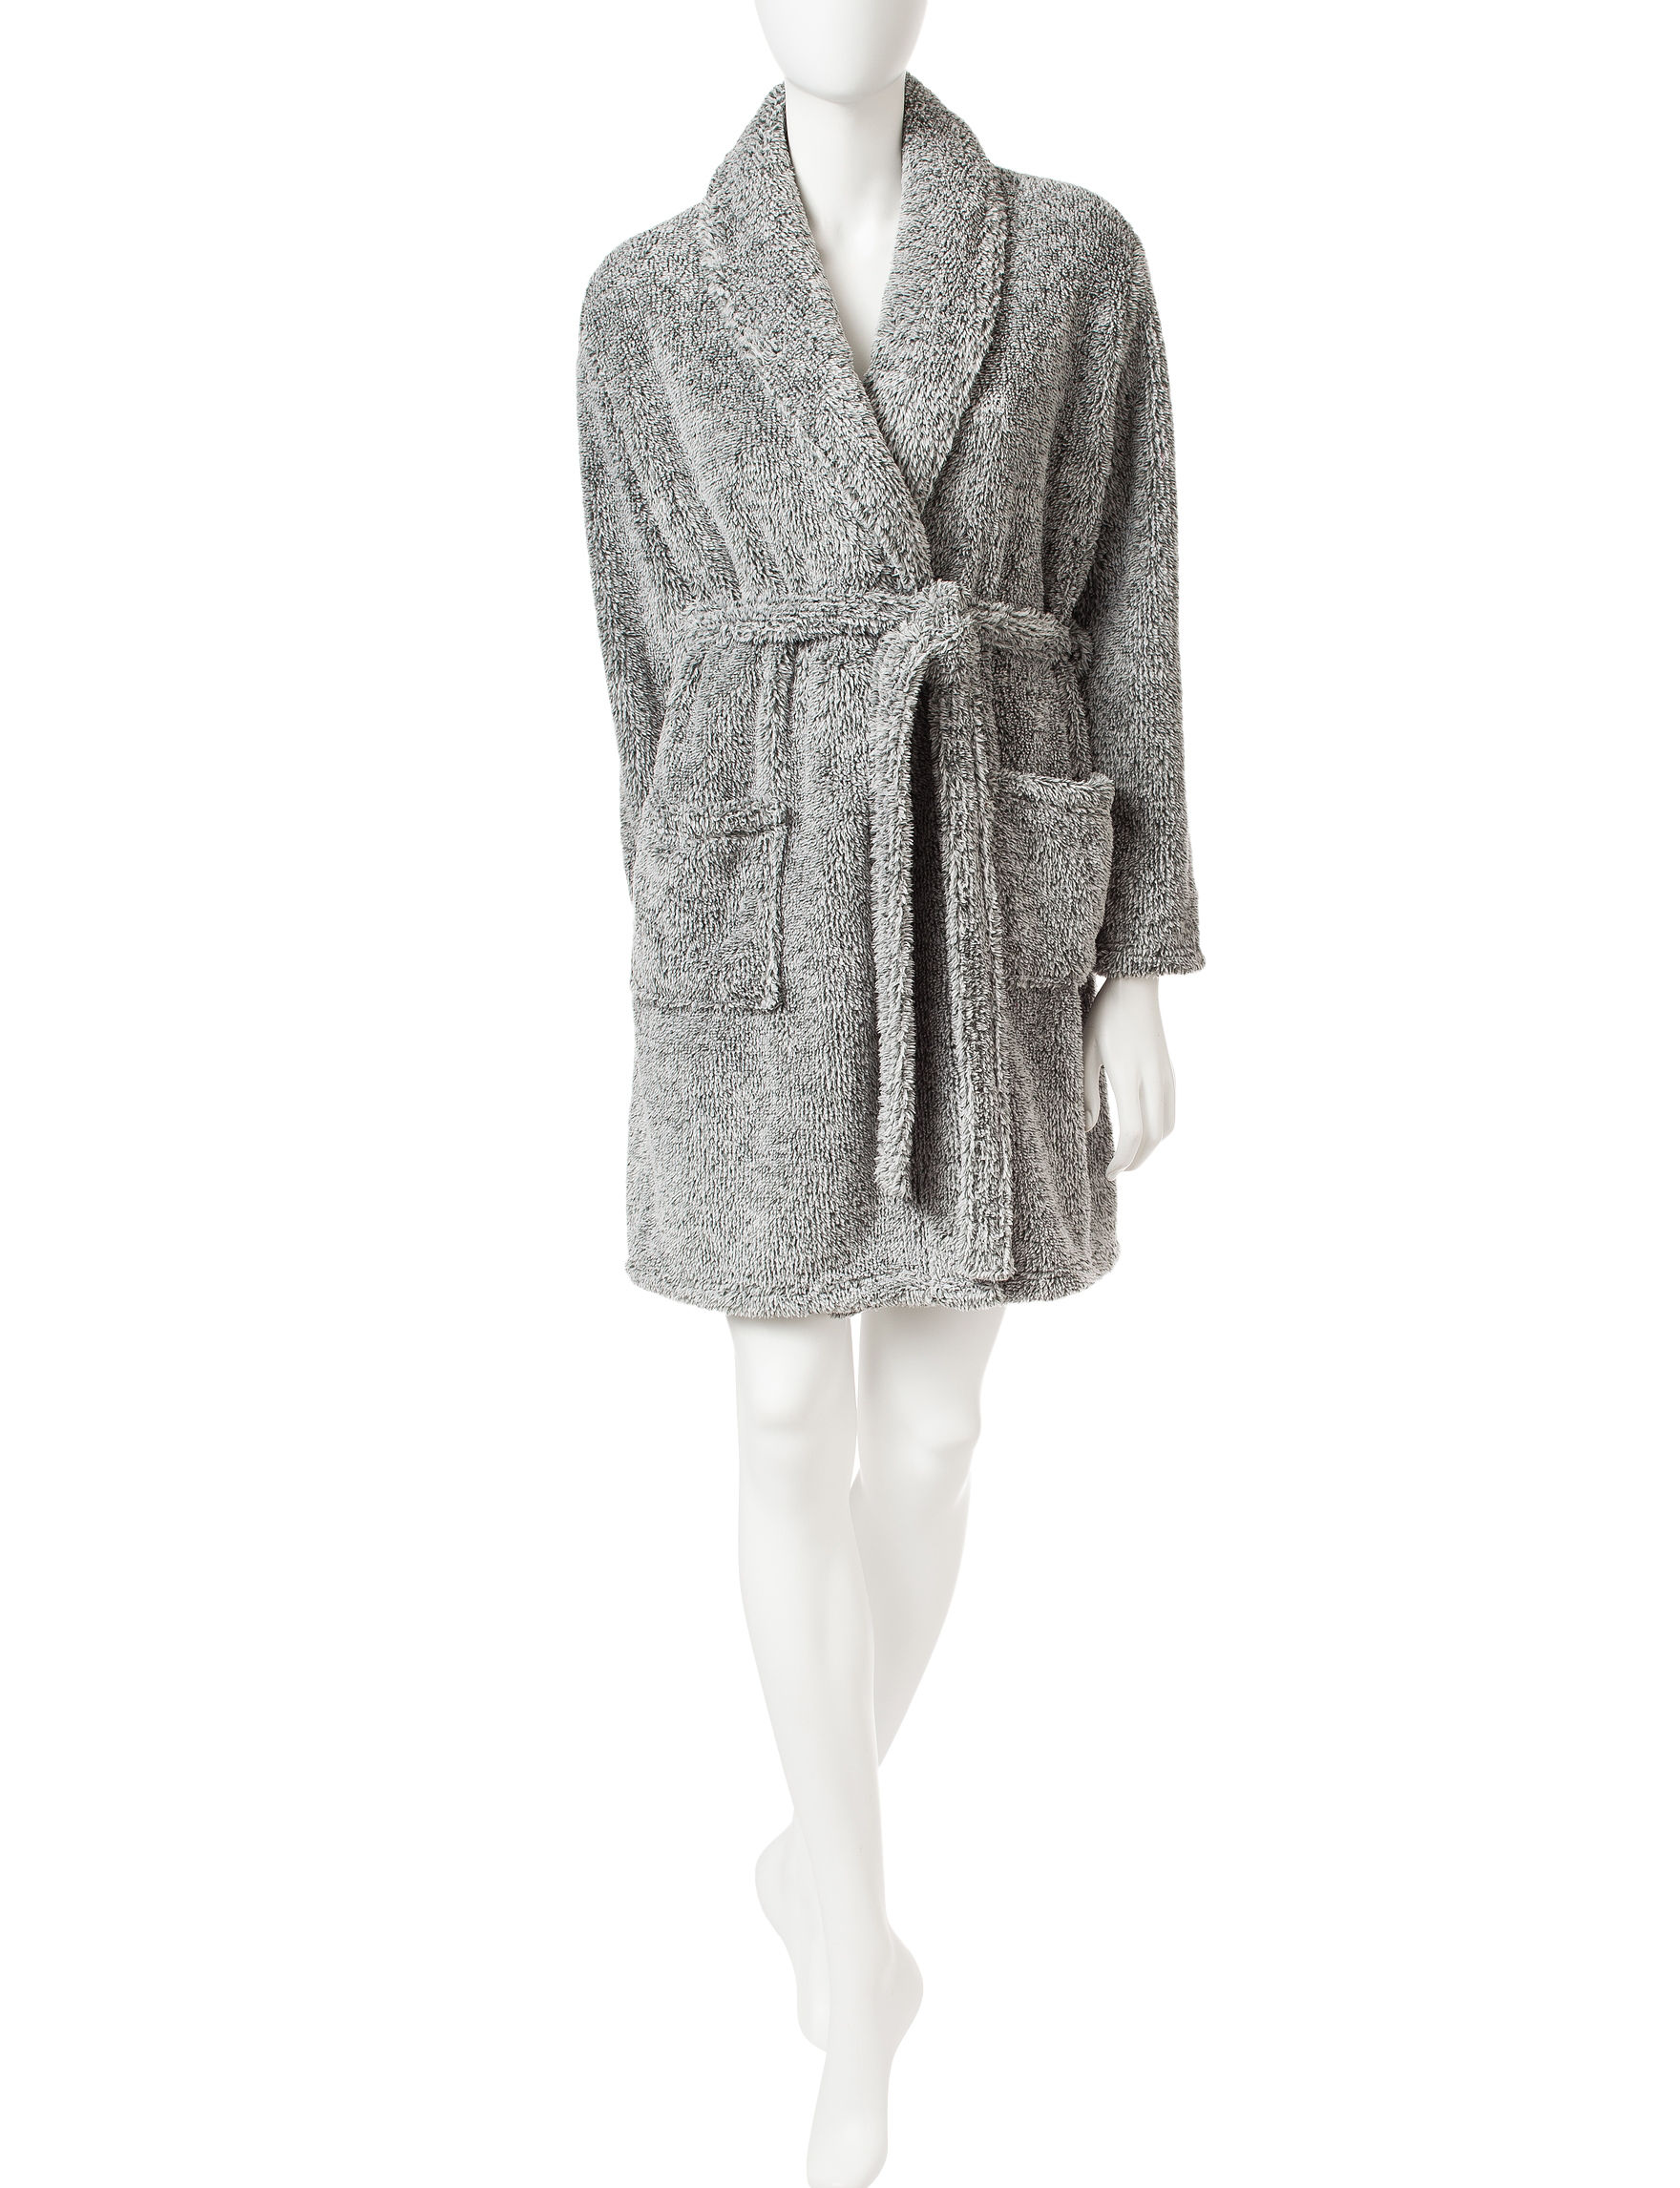 Laura Ashley Grey Robes, Wraps & Dusters